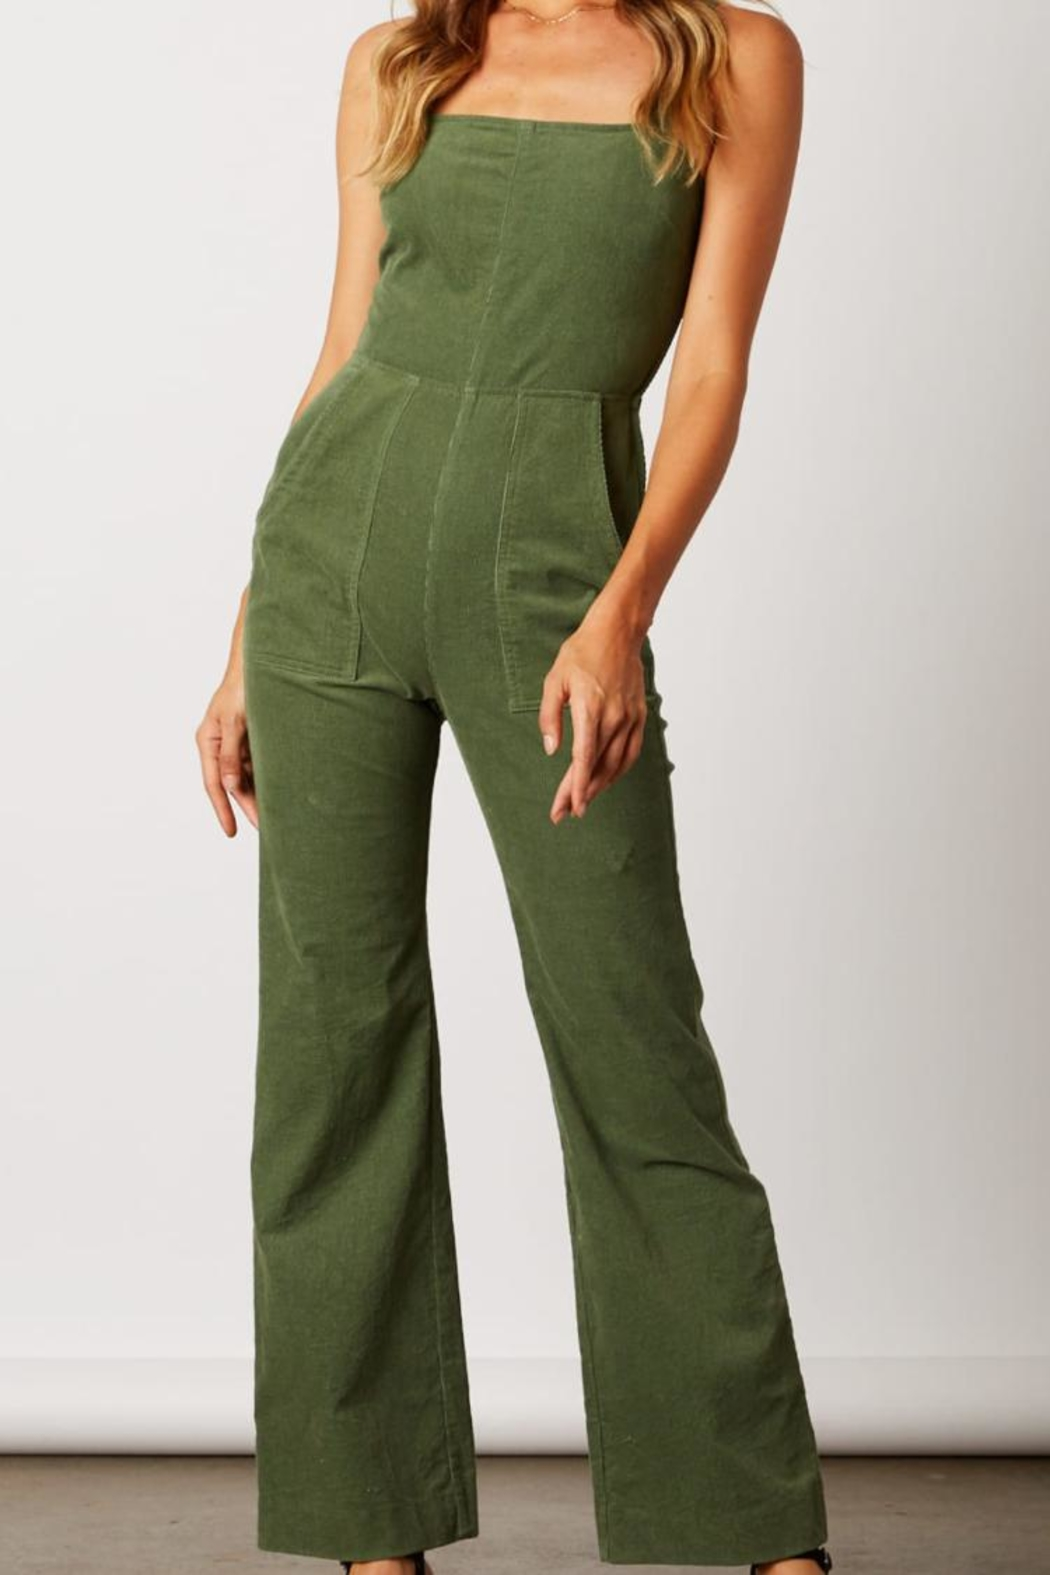 Cotton Candy LA Olive Green Jumpsuit - Front Cropped Image